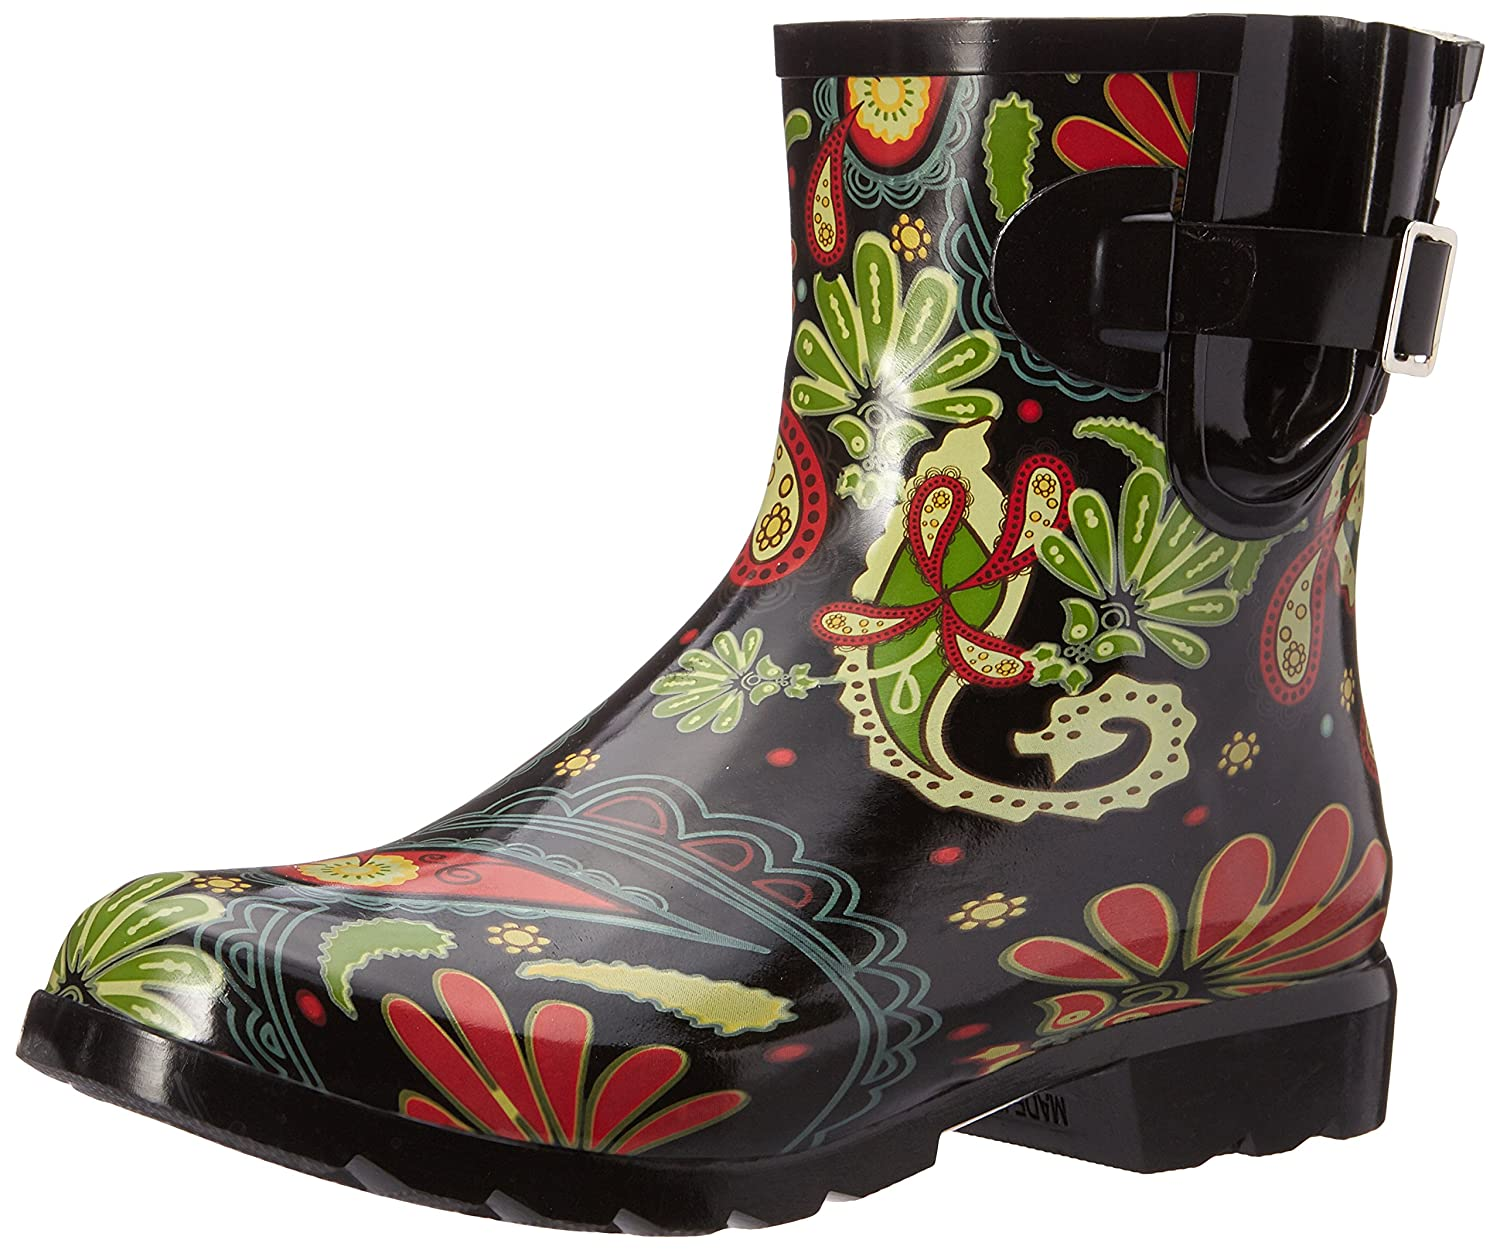 Nomad Women's Droplet Rain Boot B01B6614E2 6 M US|Black Paisley